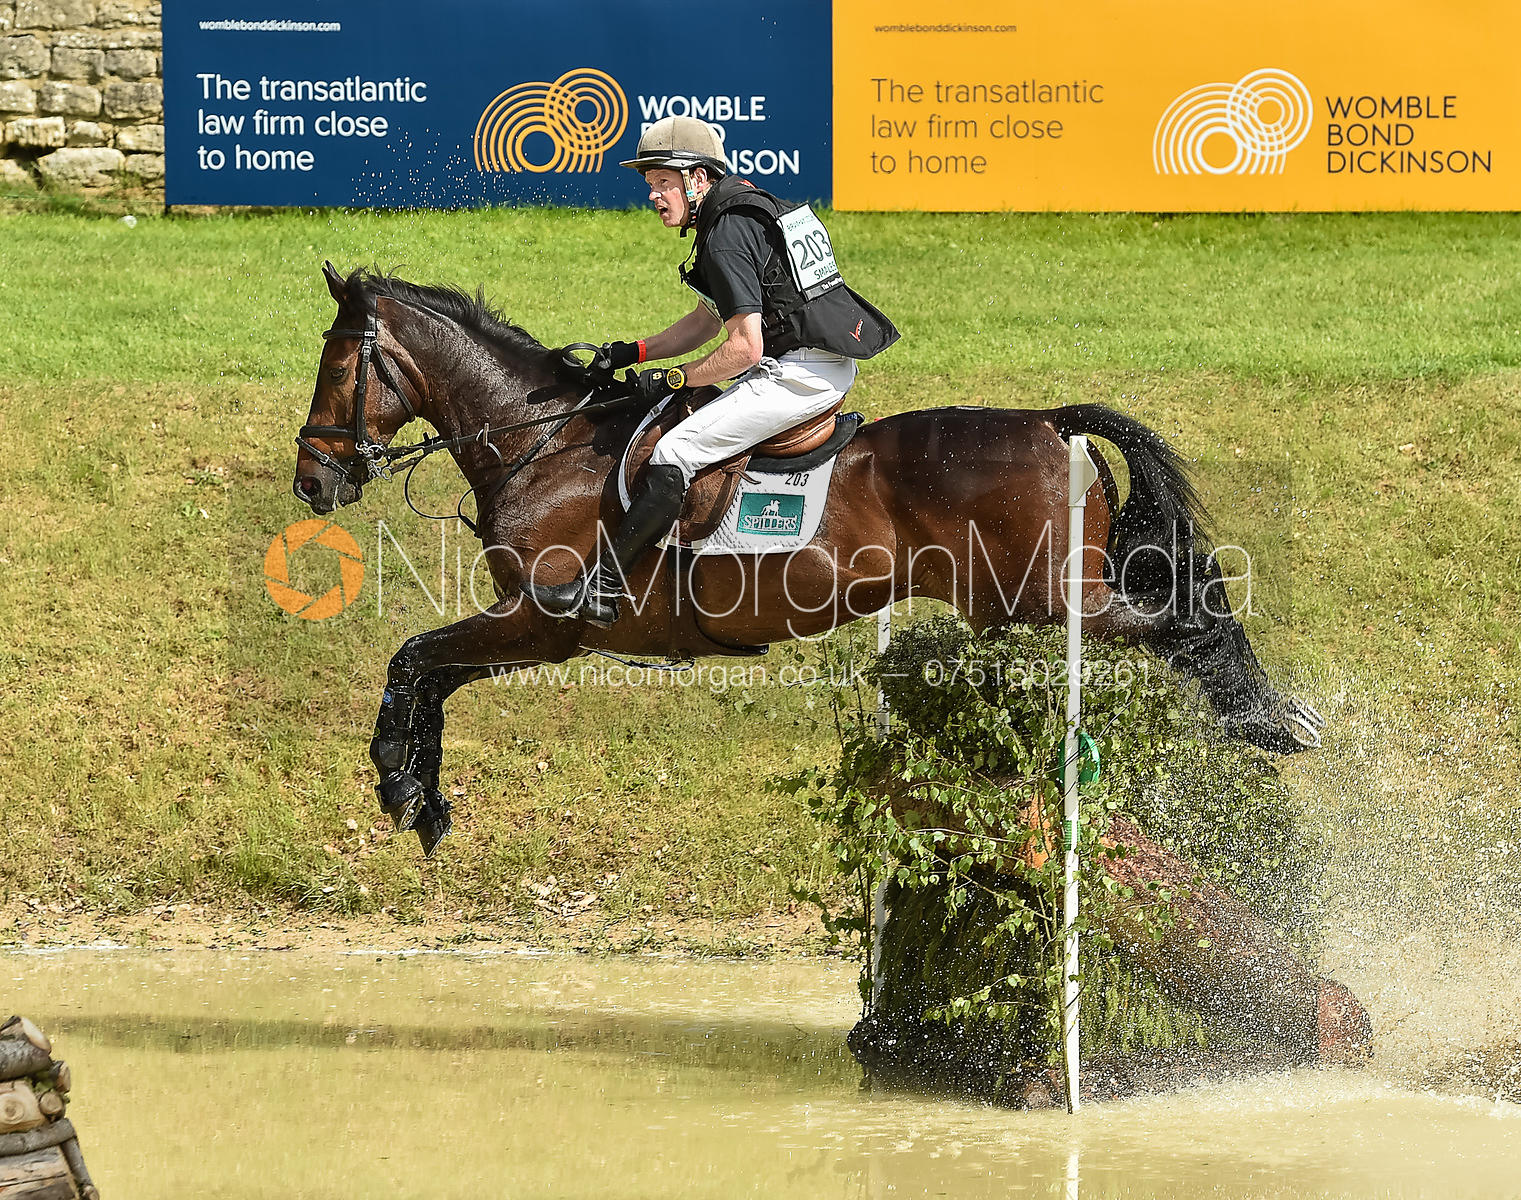 Angus Smales and ESI PHEONIX, Equitrek Bramham Horse Trials 2018